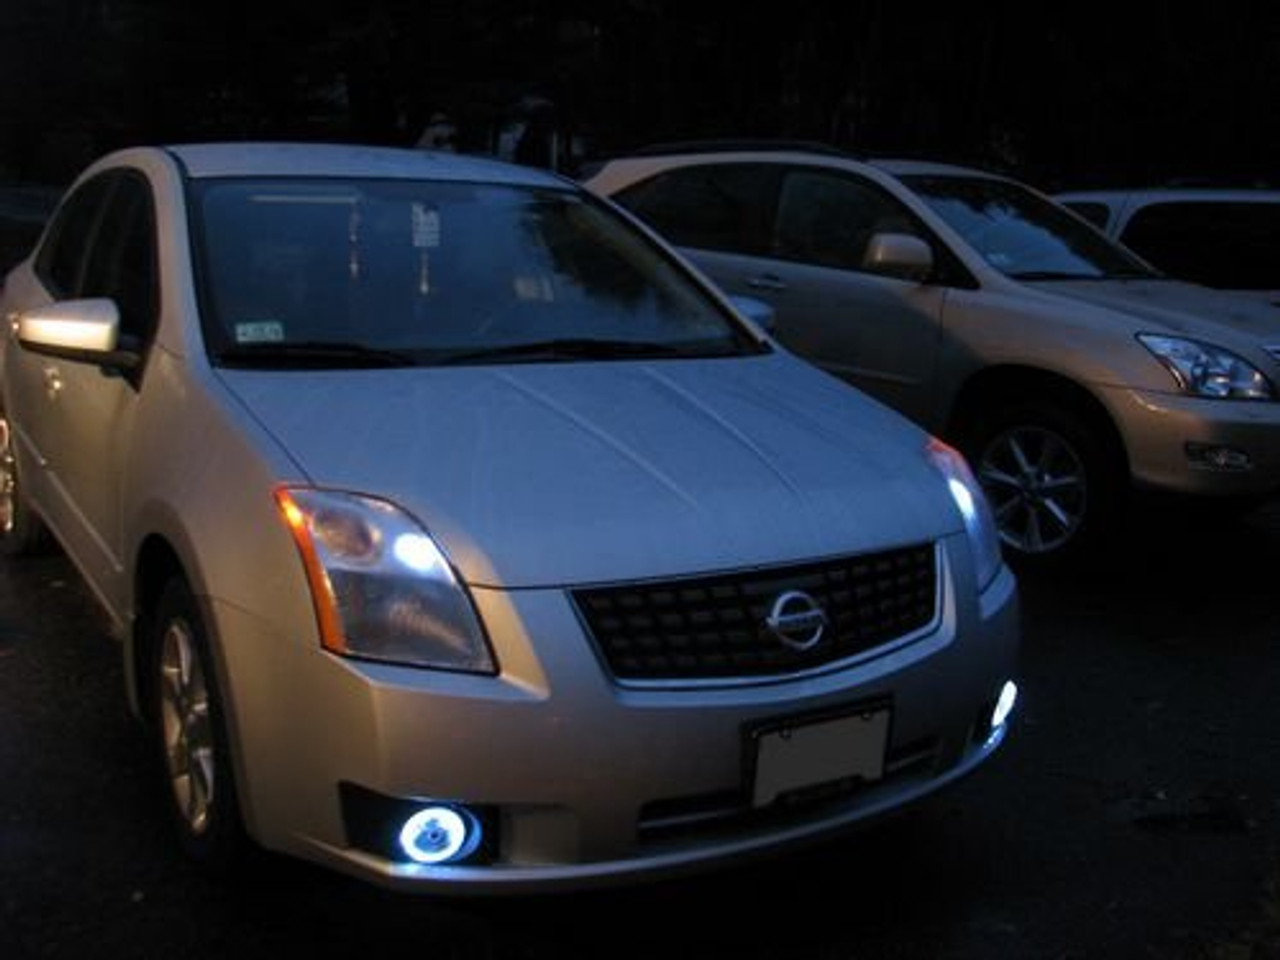 2007 2012 Nissan Sentra Halo Fog Lamps Driving Lights B16 Kit Blinglights Com